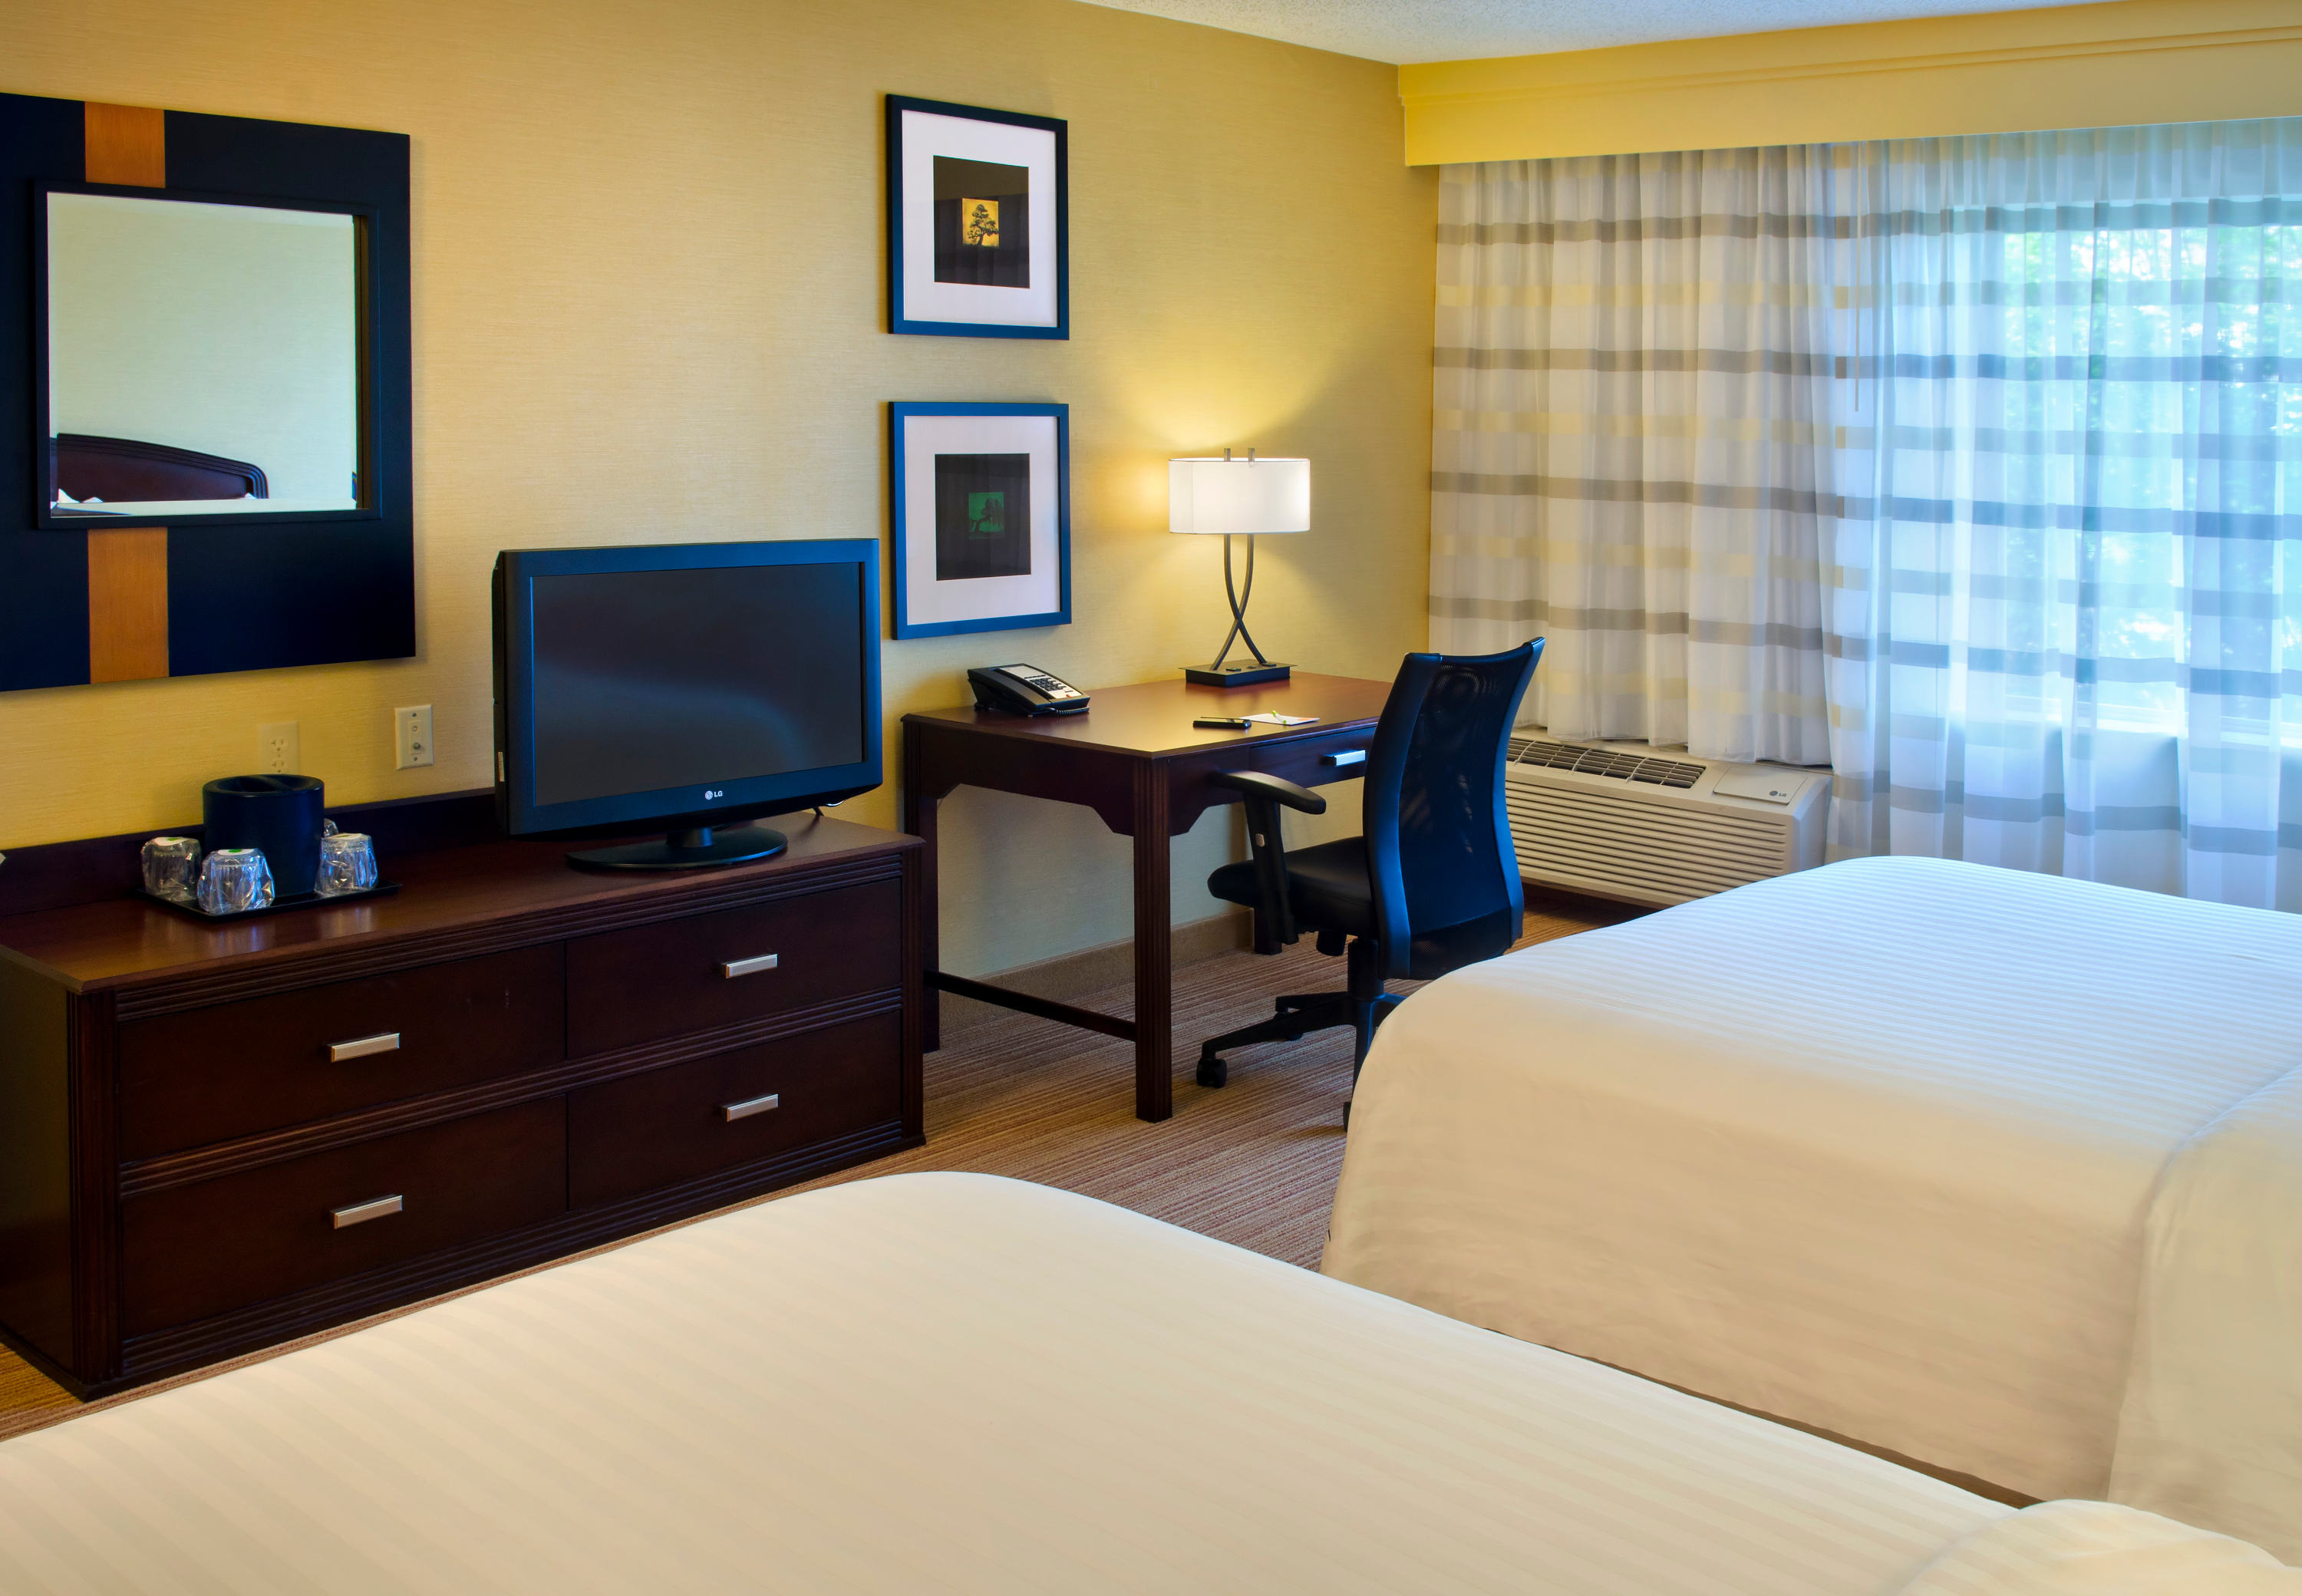 Courtyard by Marriott Allentown Bethlehem/Lehigh Valley Airport image 8